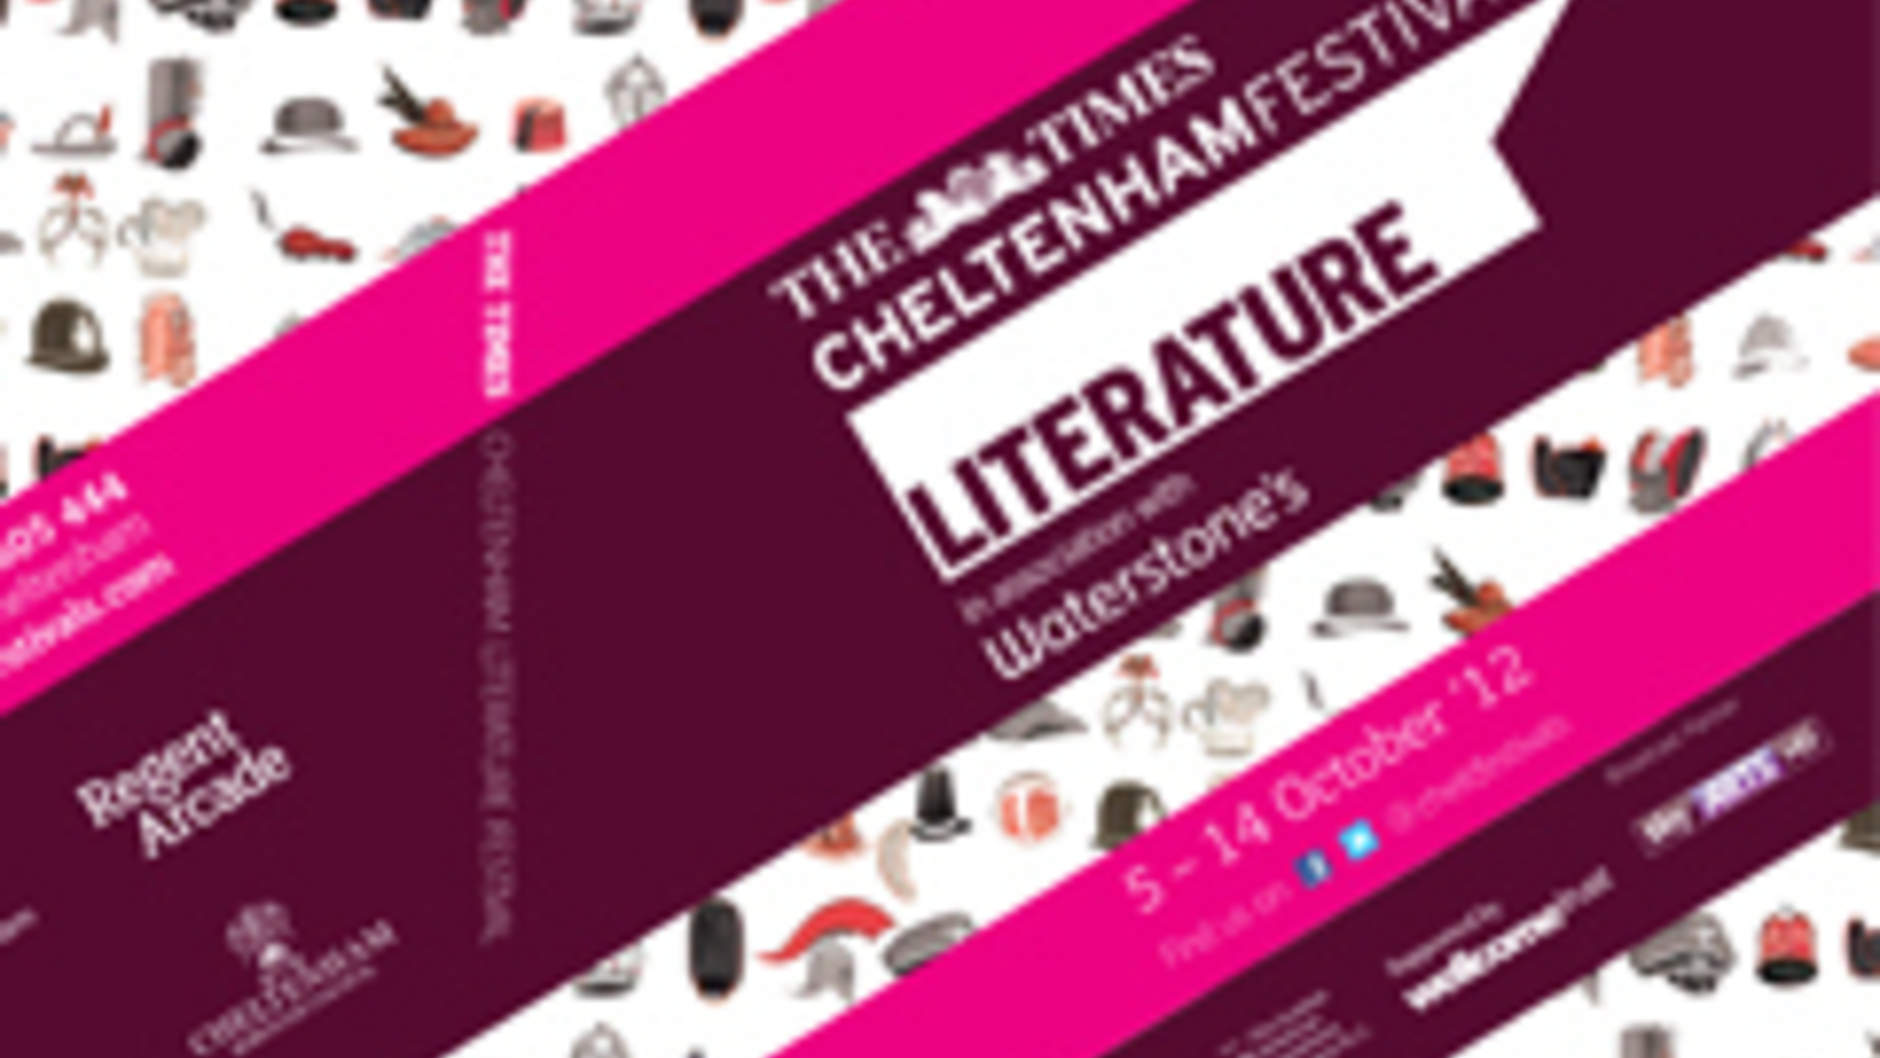 The Coexist Foundation at the Cheltenham Literature Festival